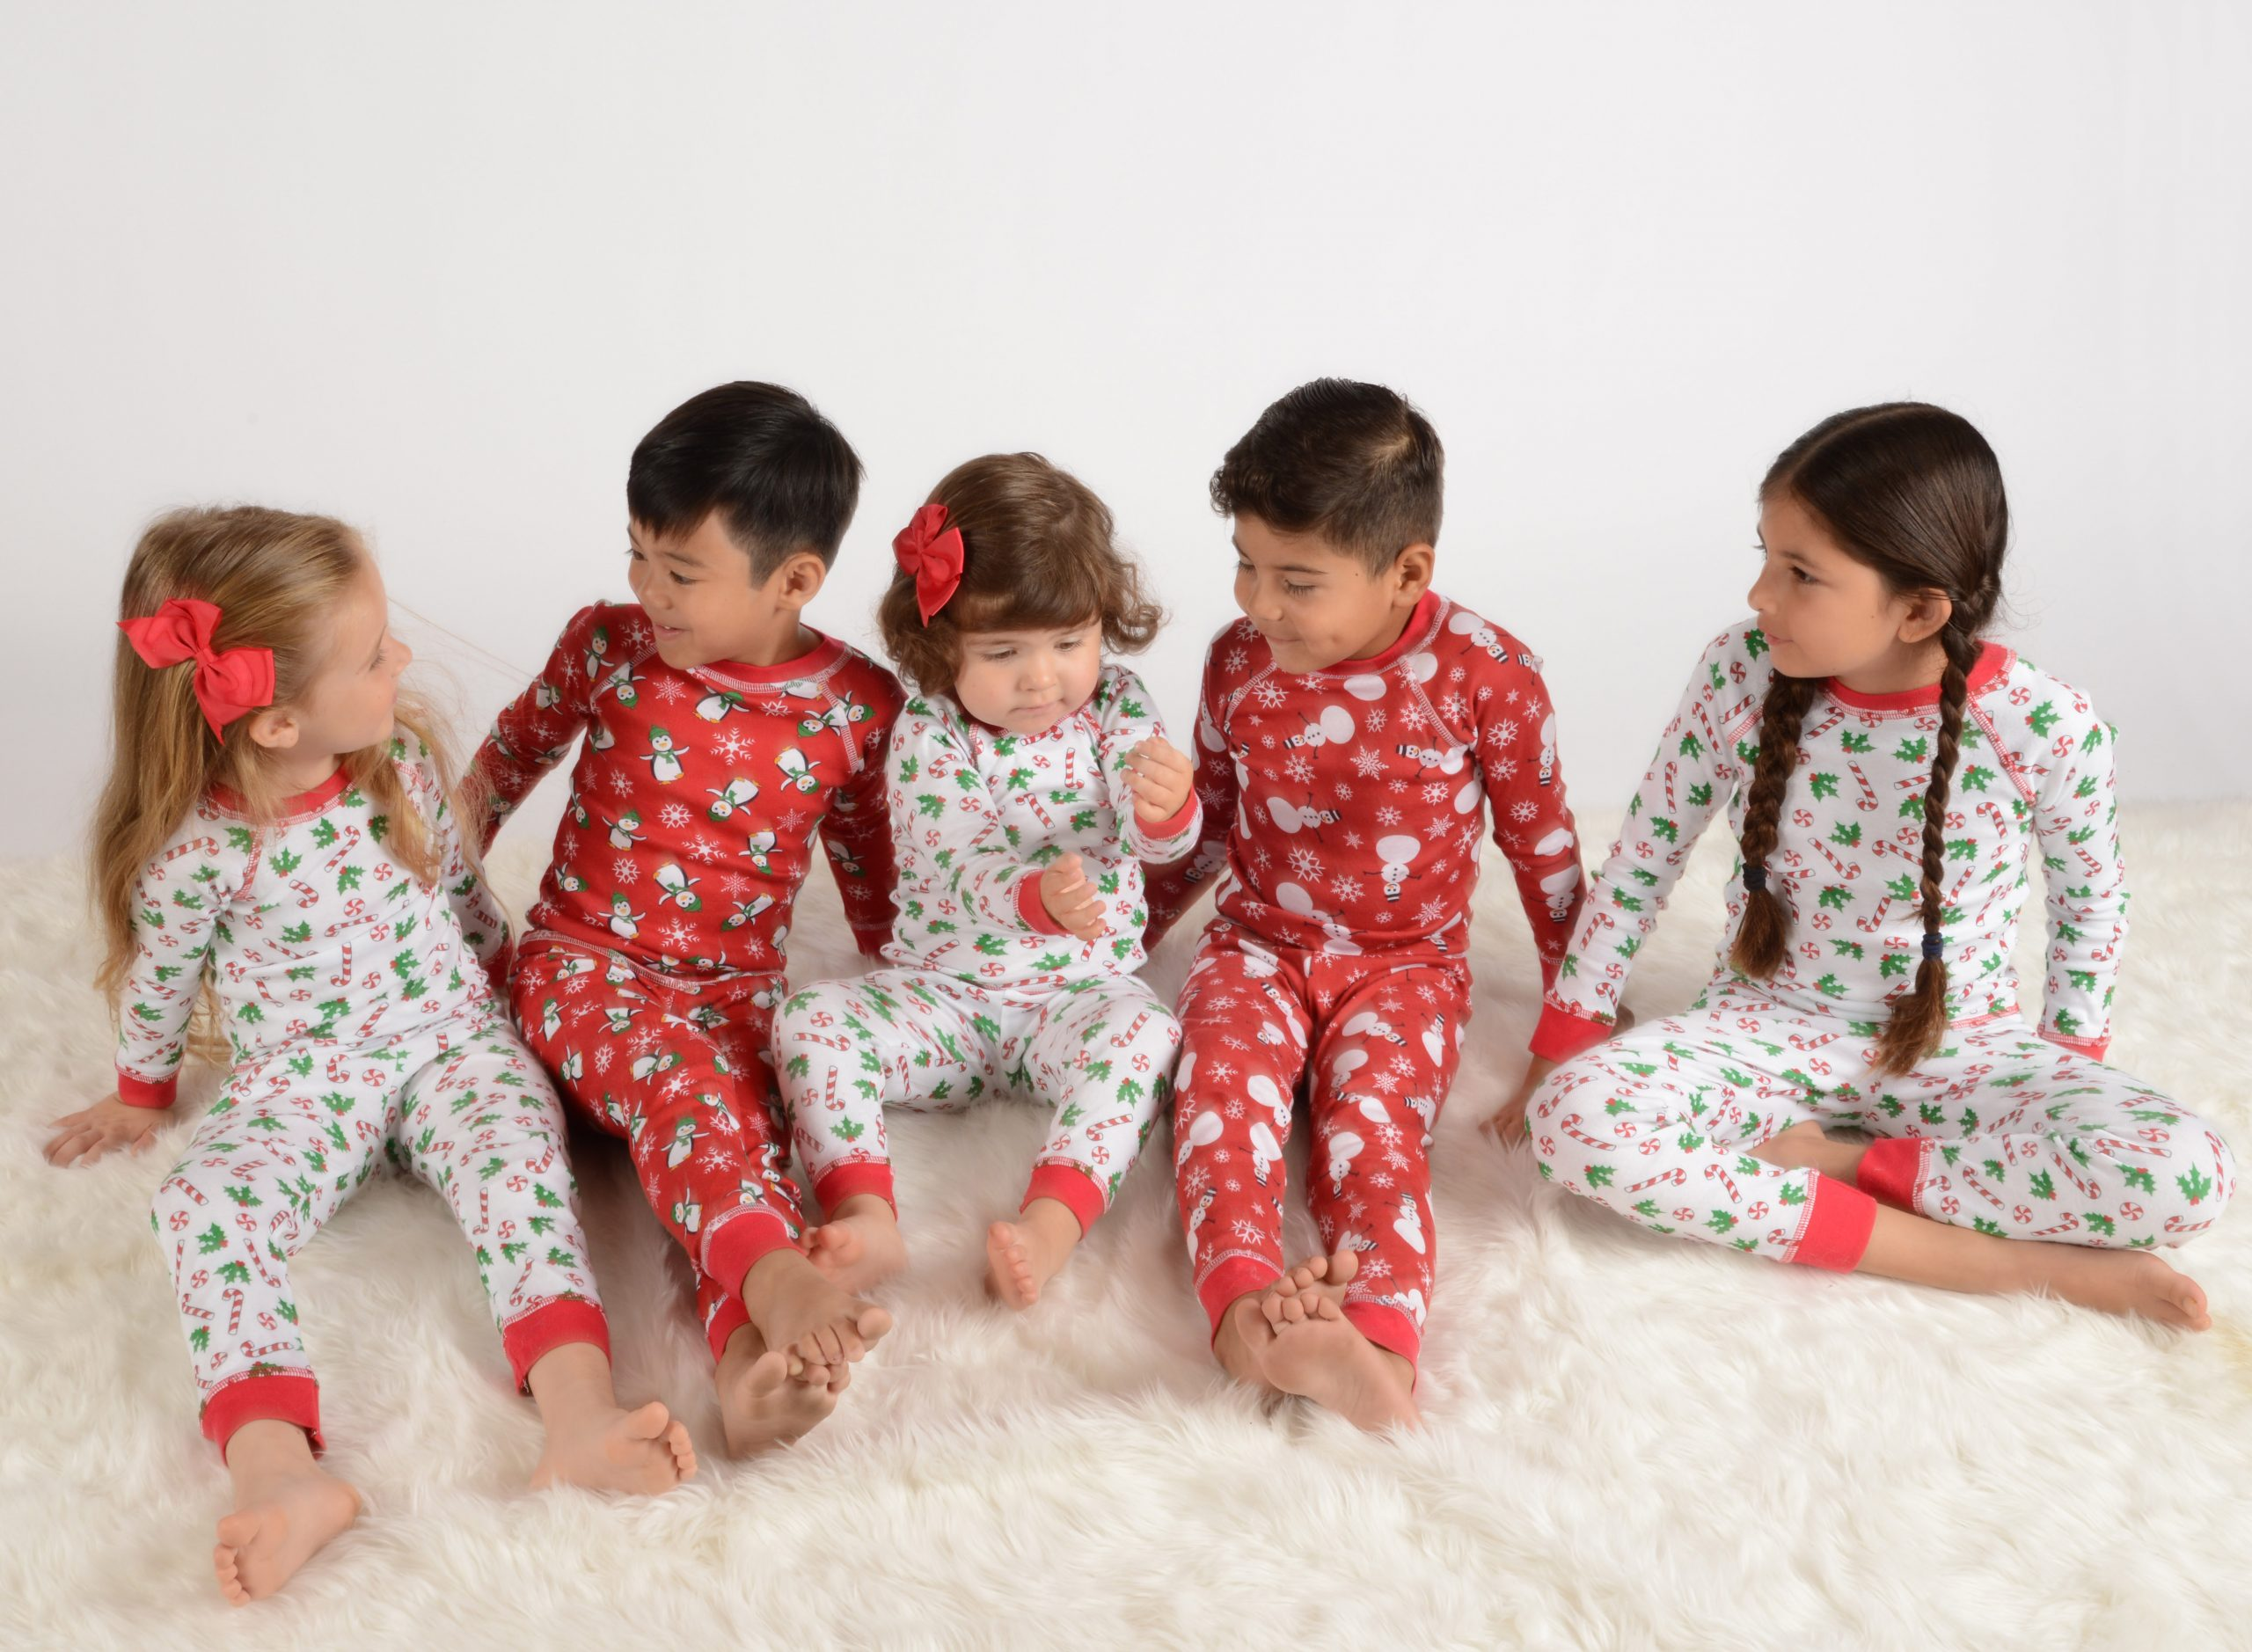 boys and girls wearing holiday pajamas